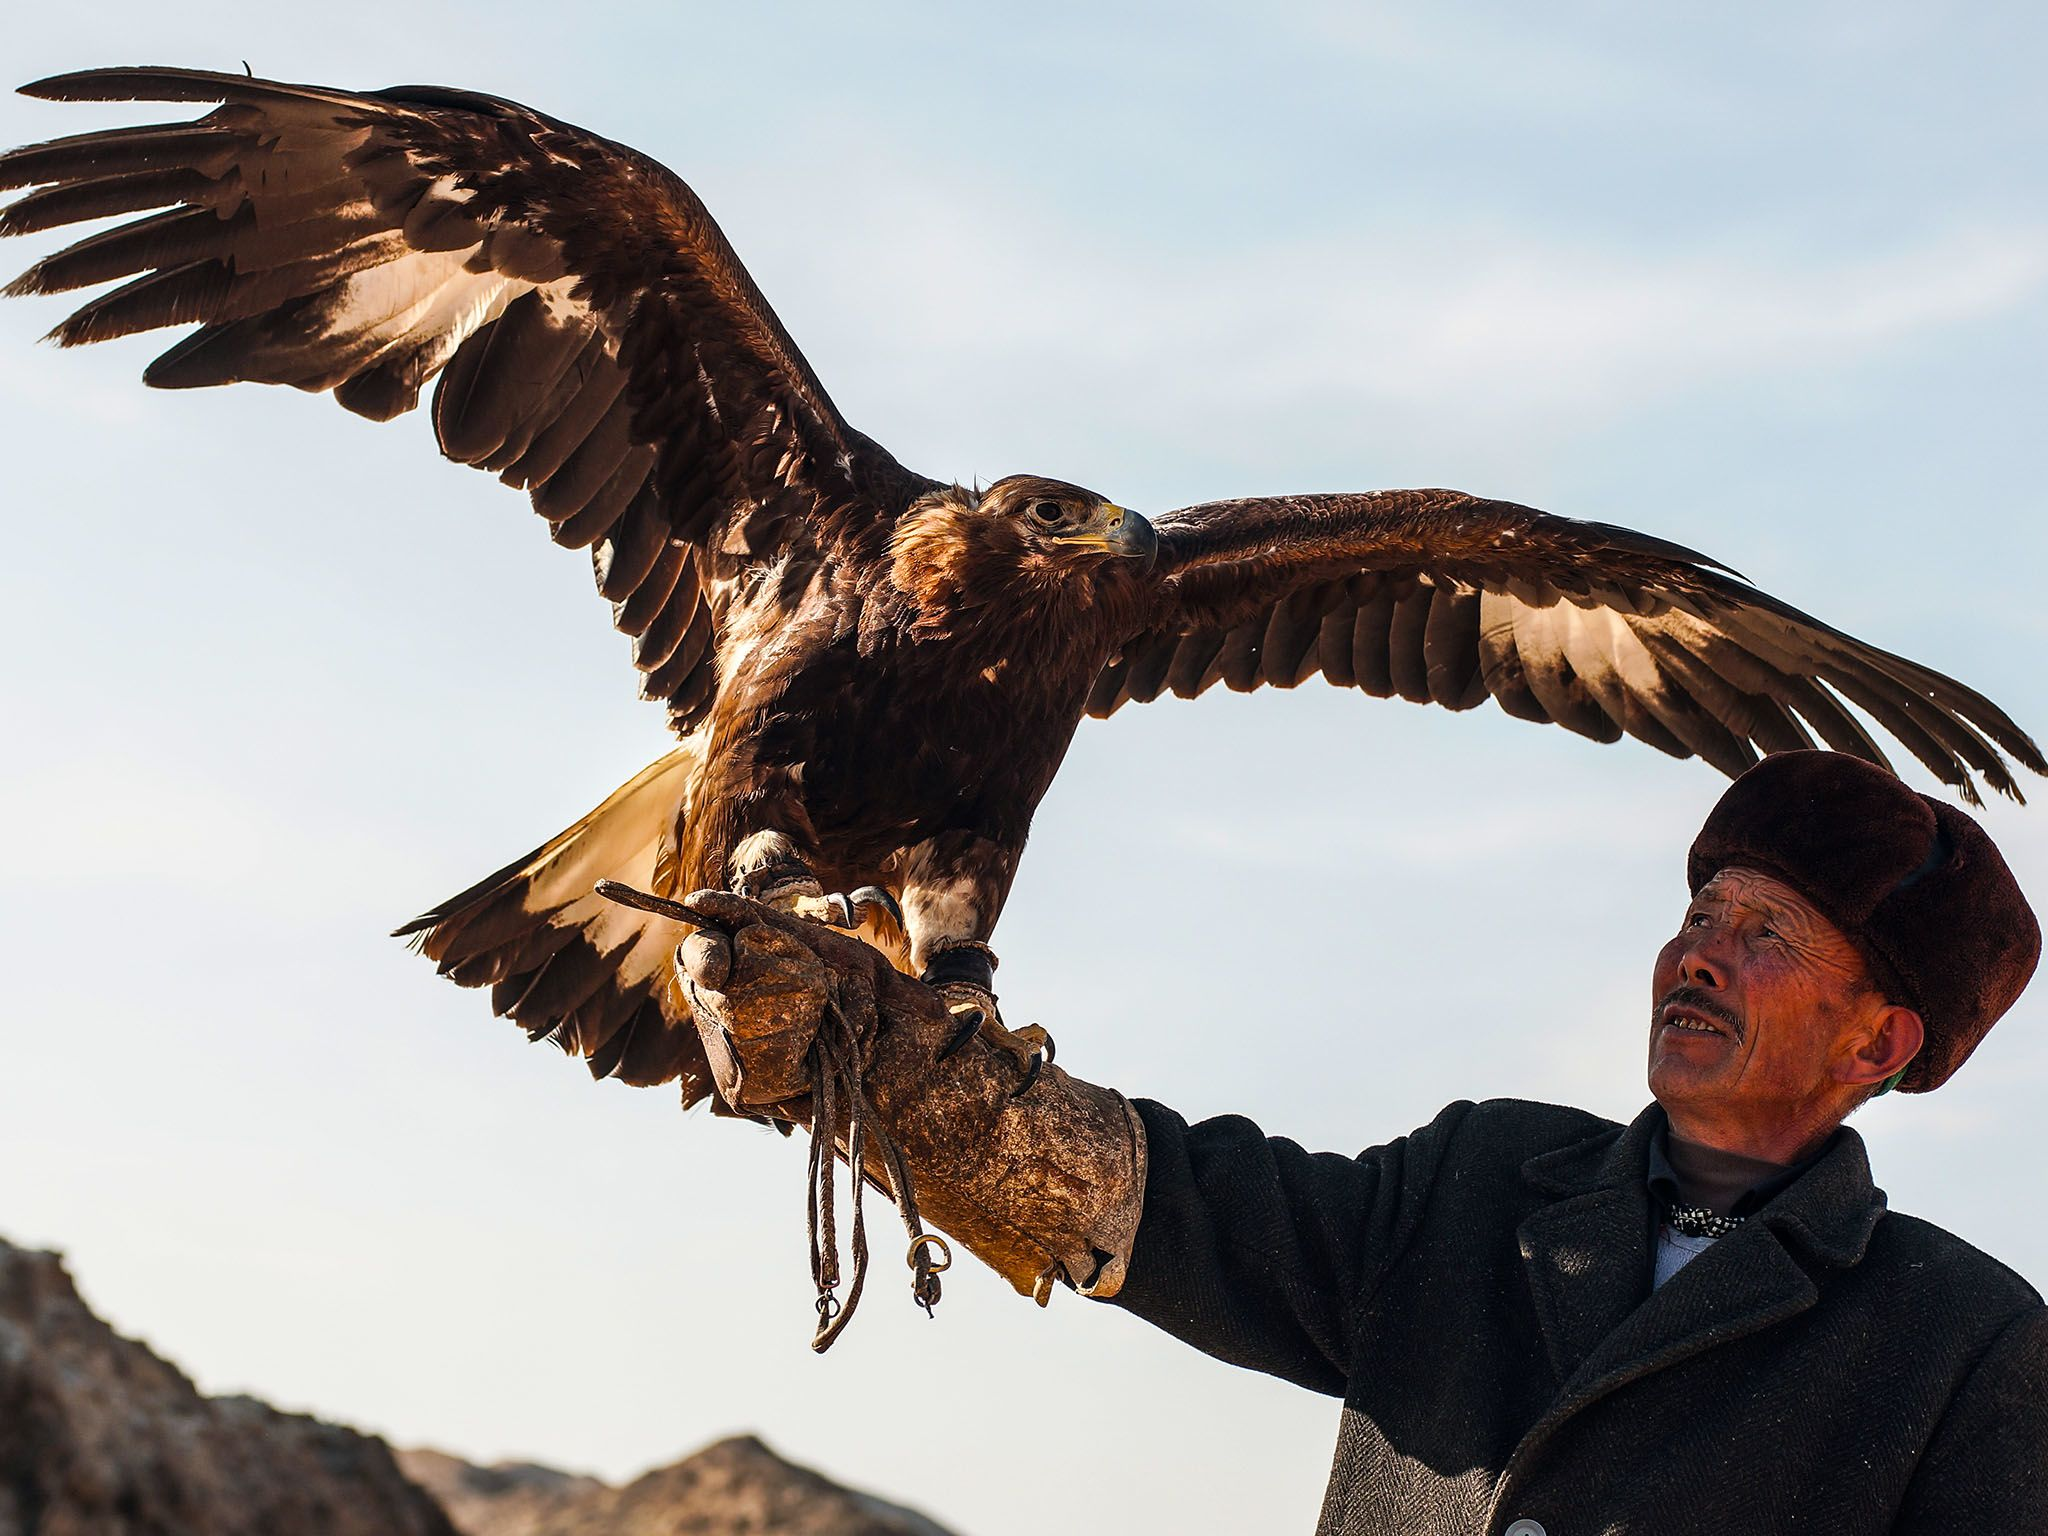 Macan and his eagle. Macan, a master falconer, teaches his son how to hunt with eagles amidst a r... [Фото дня - Август 2015]